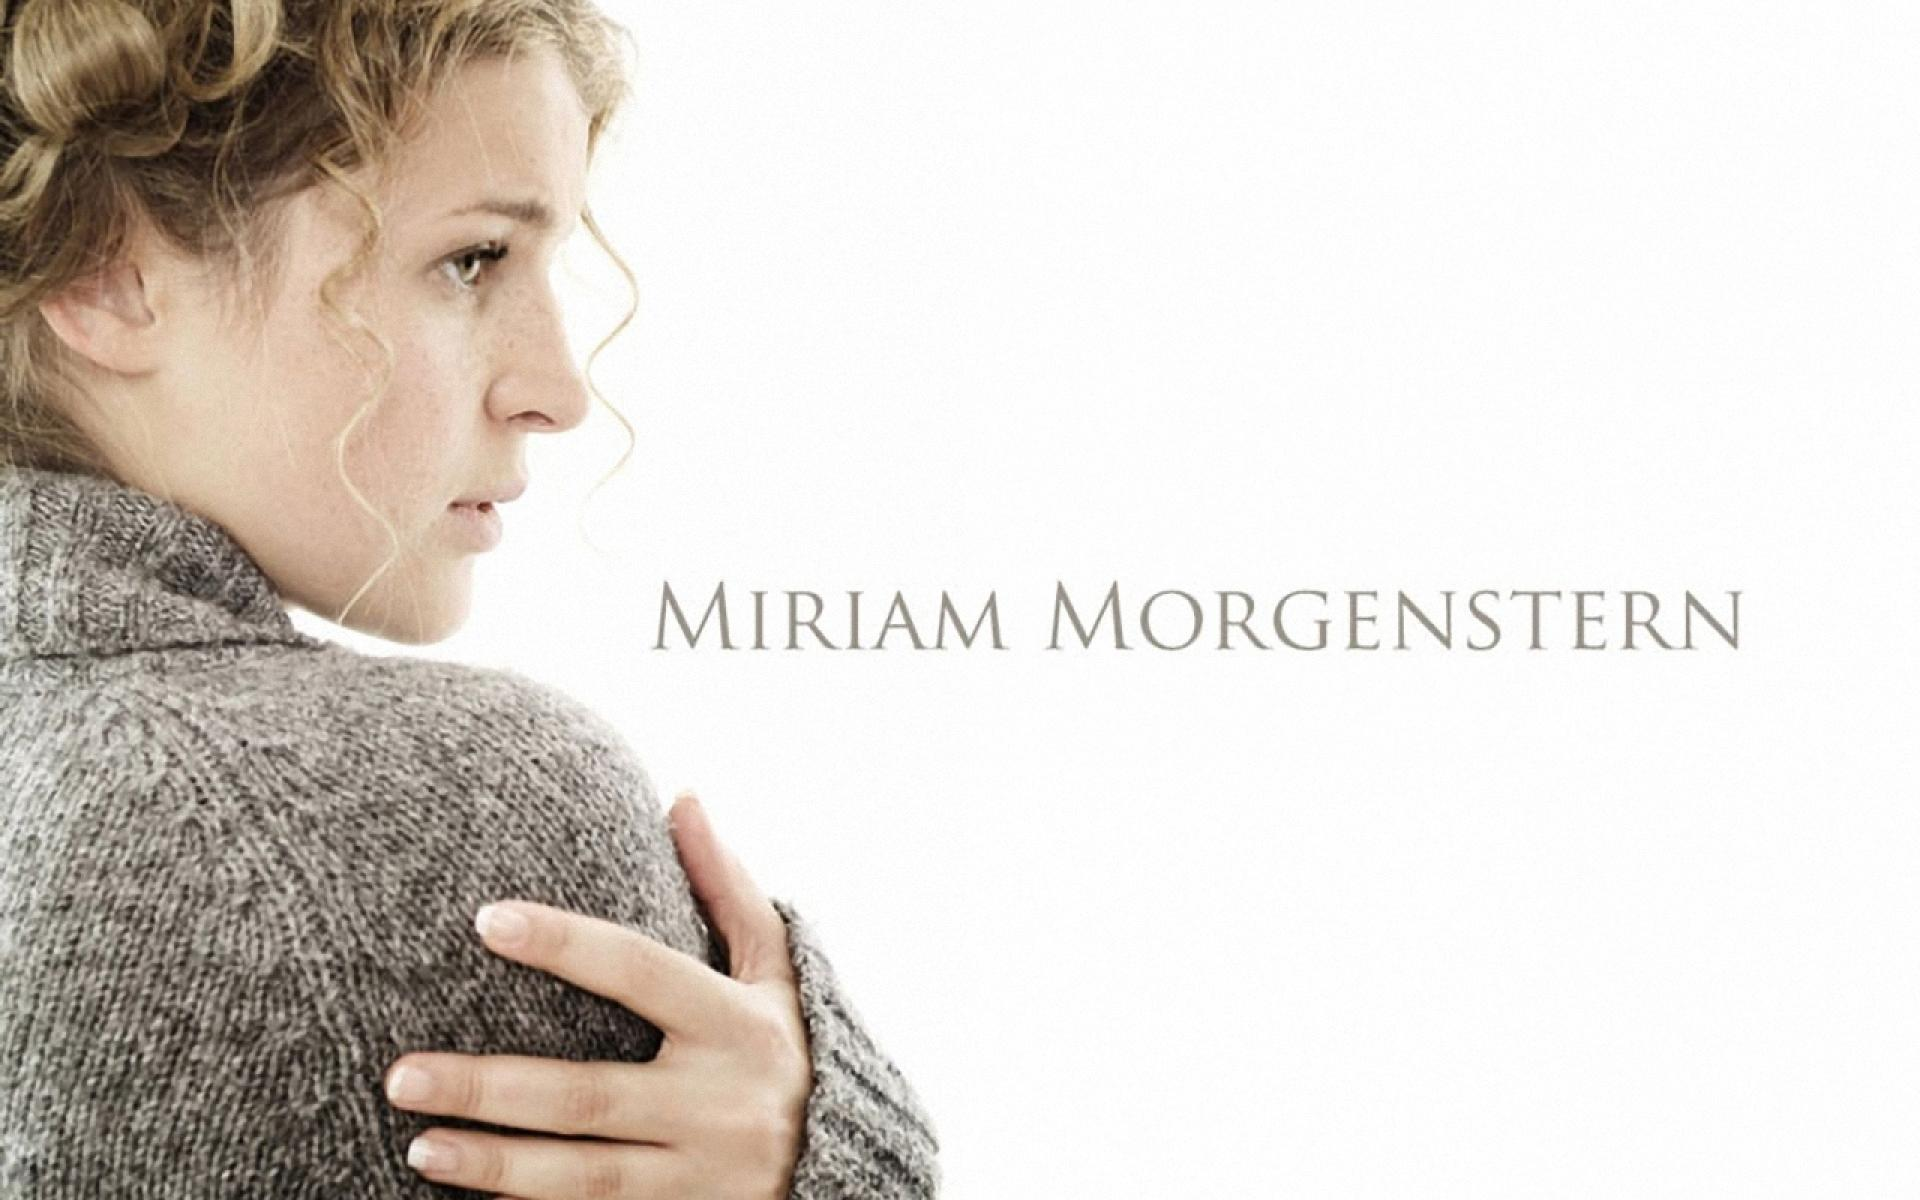 Miriam Morgenstern